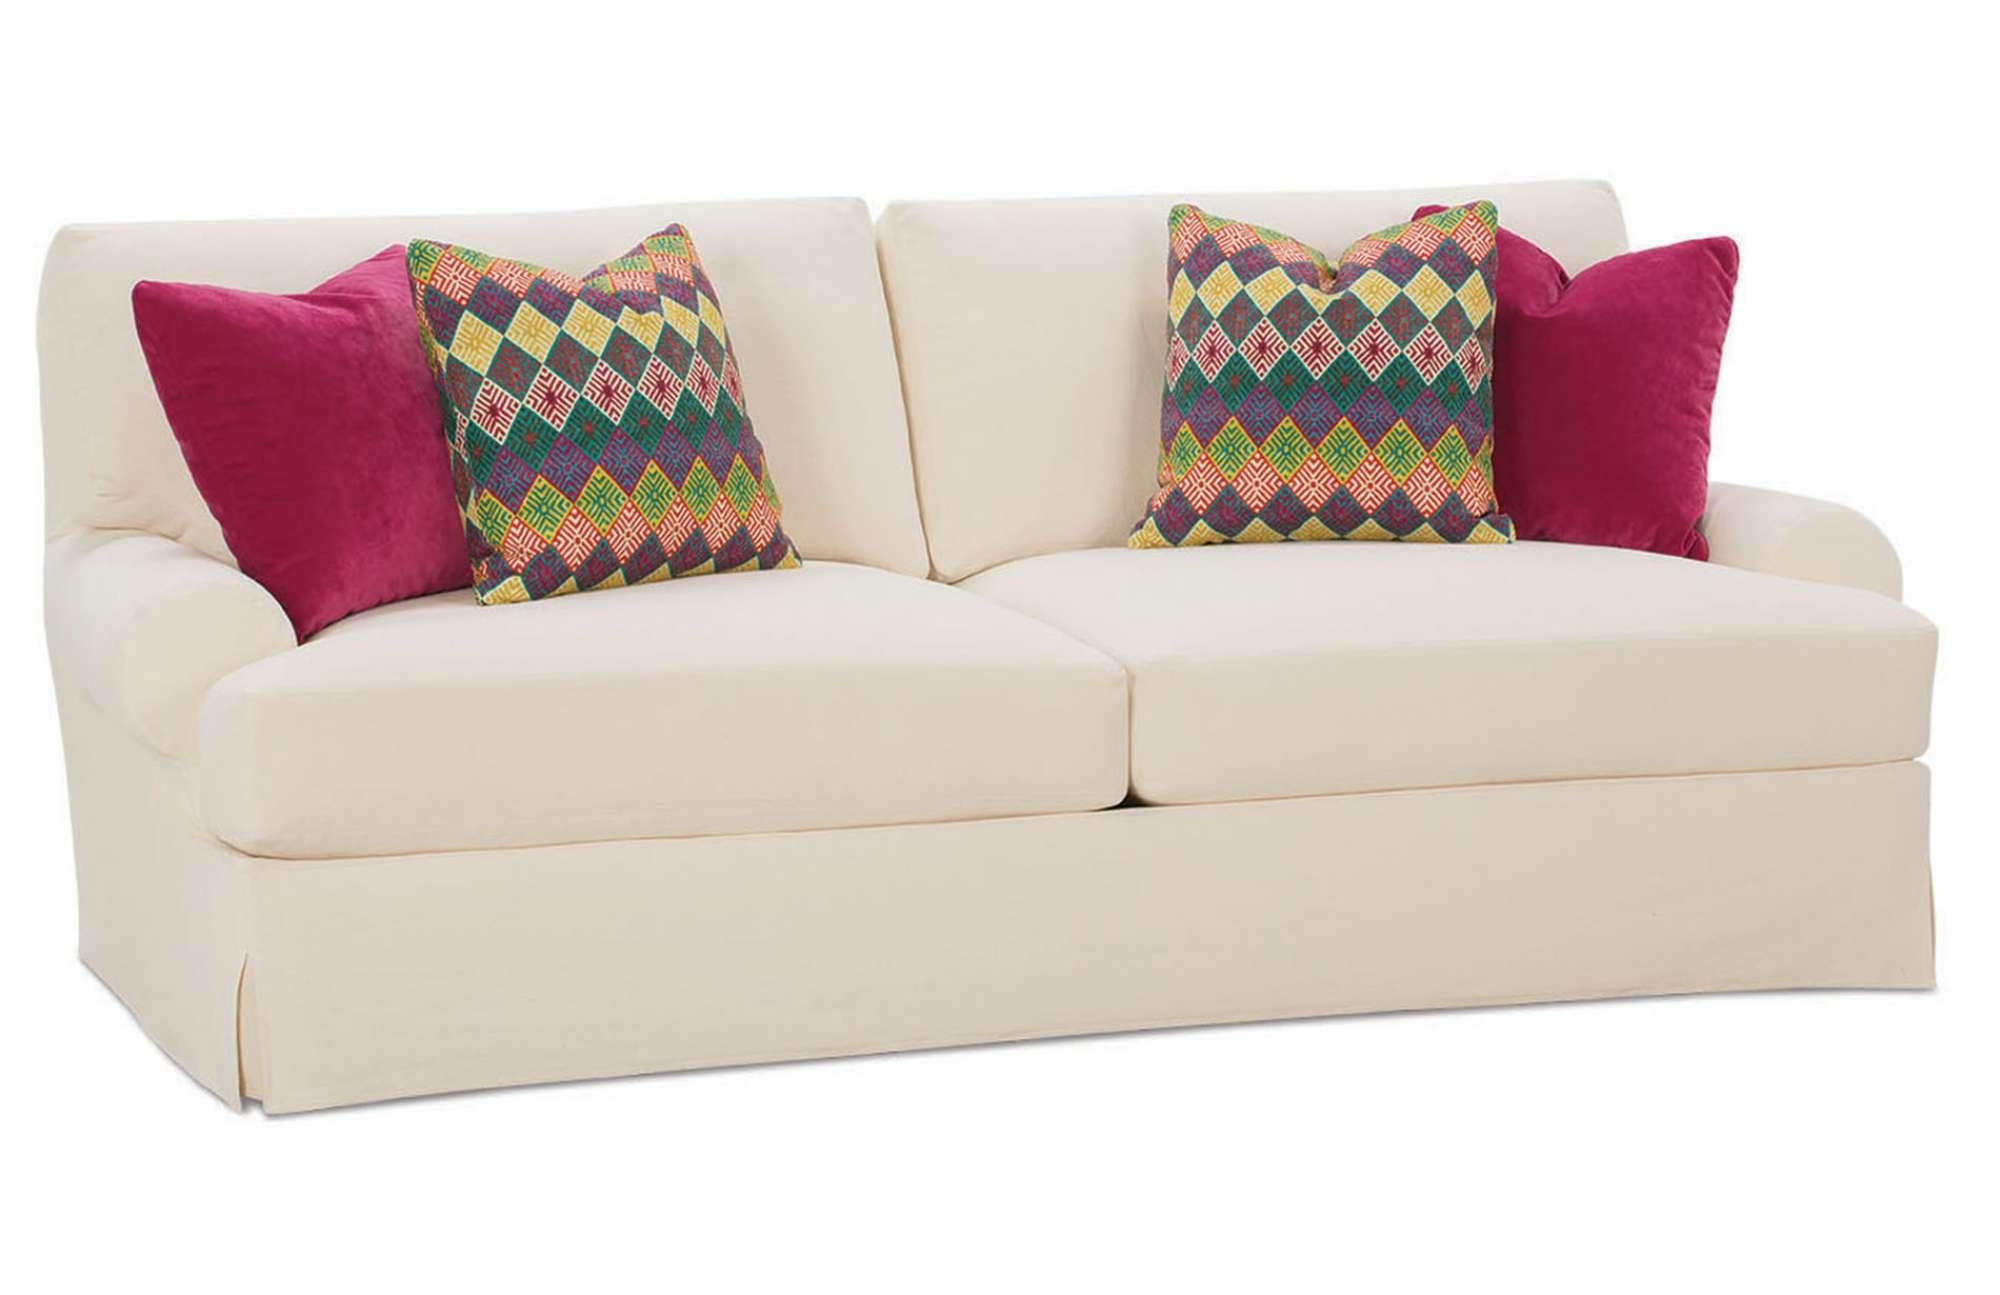 Furniture: Update Your Living Room With Best Sofa Slipcover Design Regarding Canvas Sofa Slipcovers (Image 9 of 20)